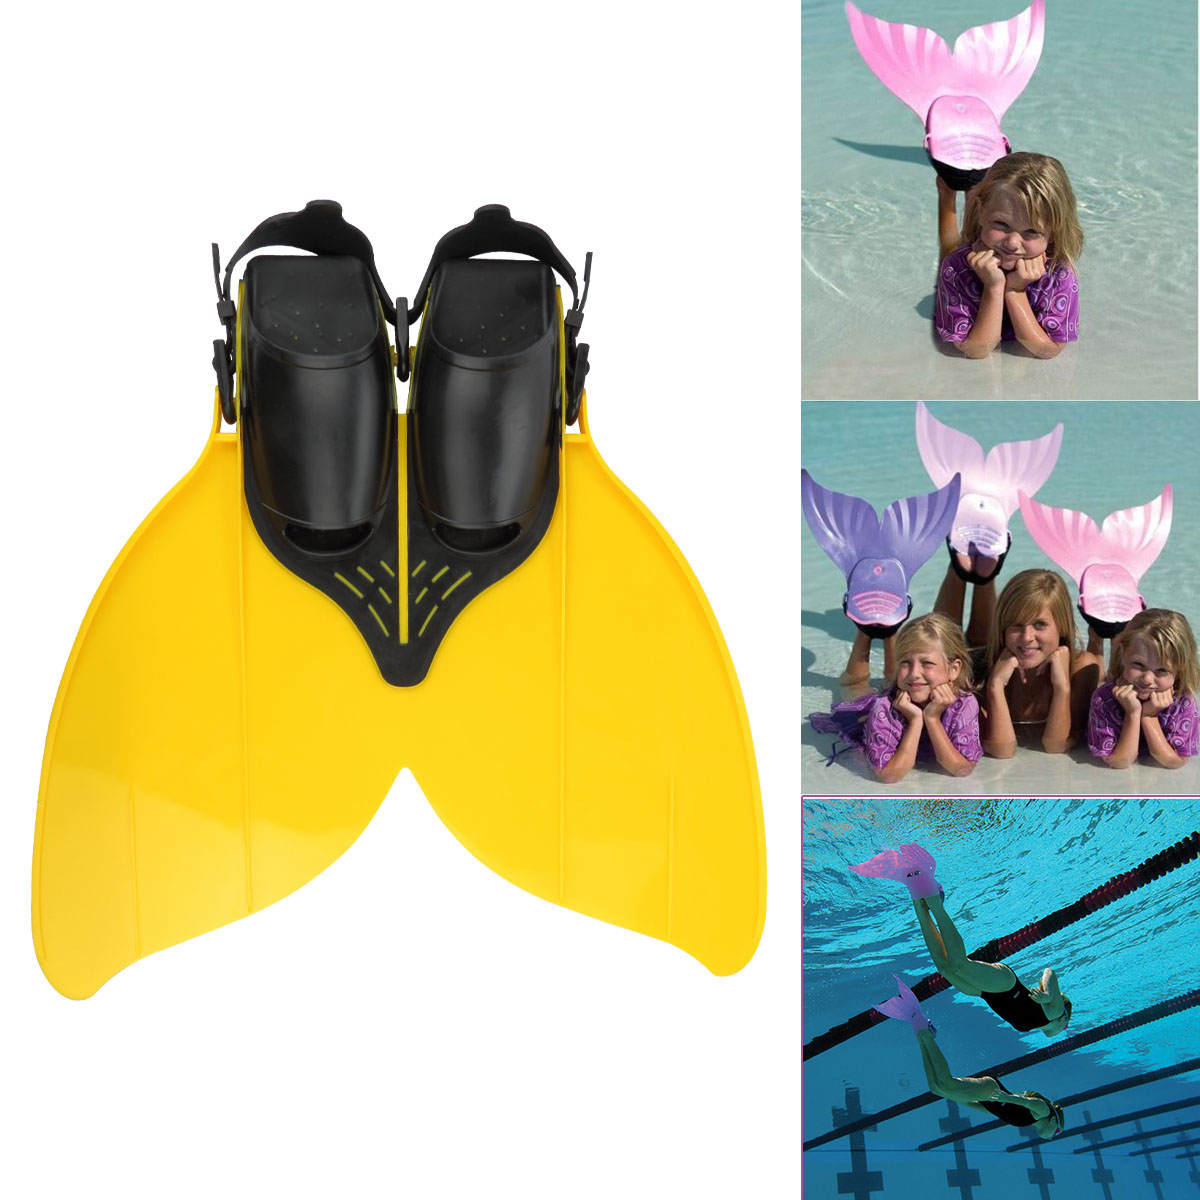 Besmall Kids Flippers Mermaid Swimming Fin Diving Monofin for Kids Children Teenager Comfortable Adjustable Swim Foot... by Besmall